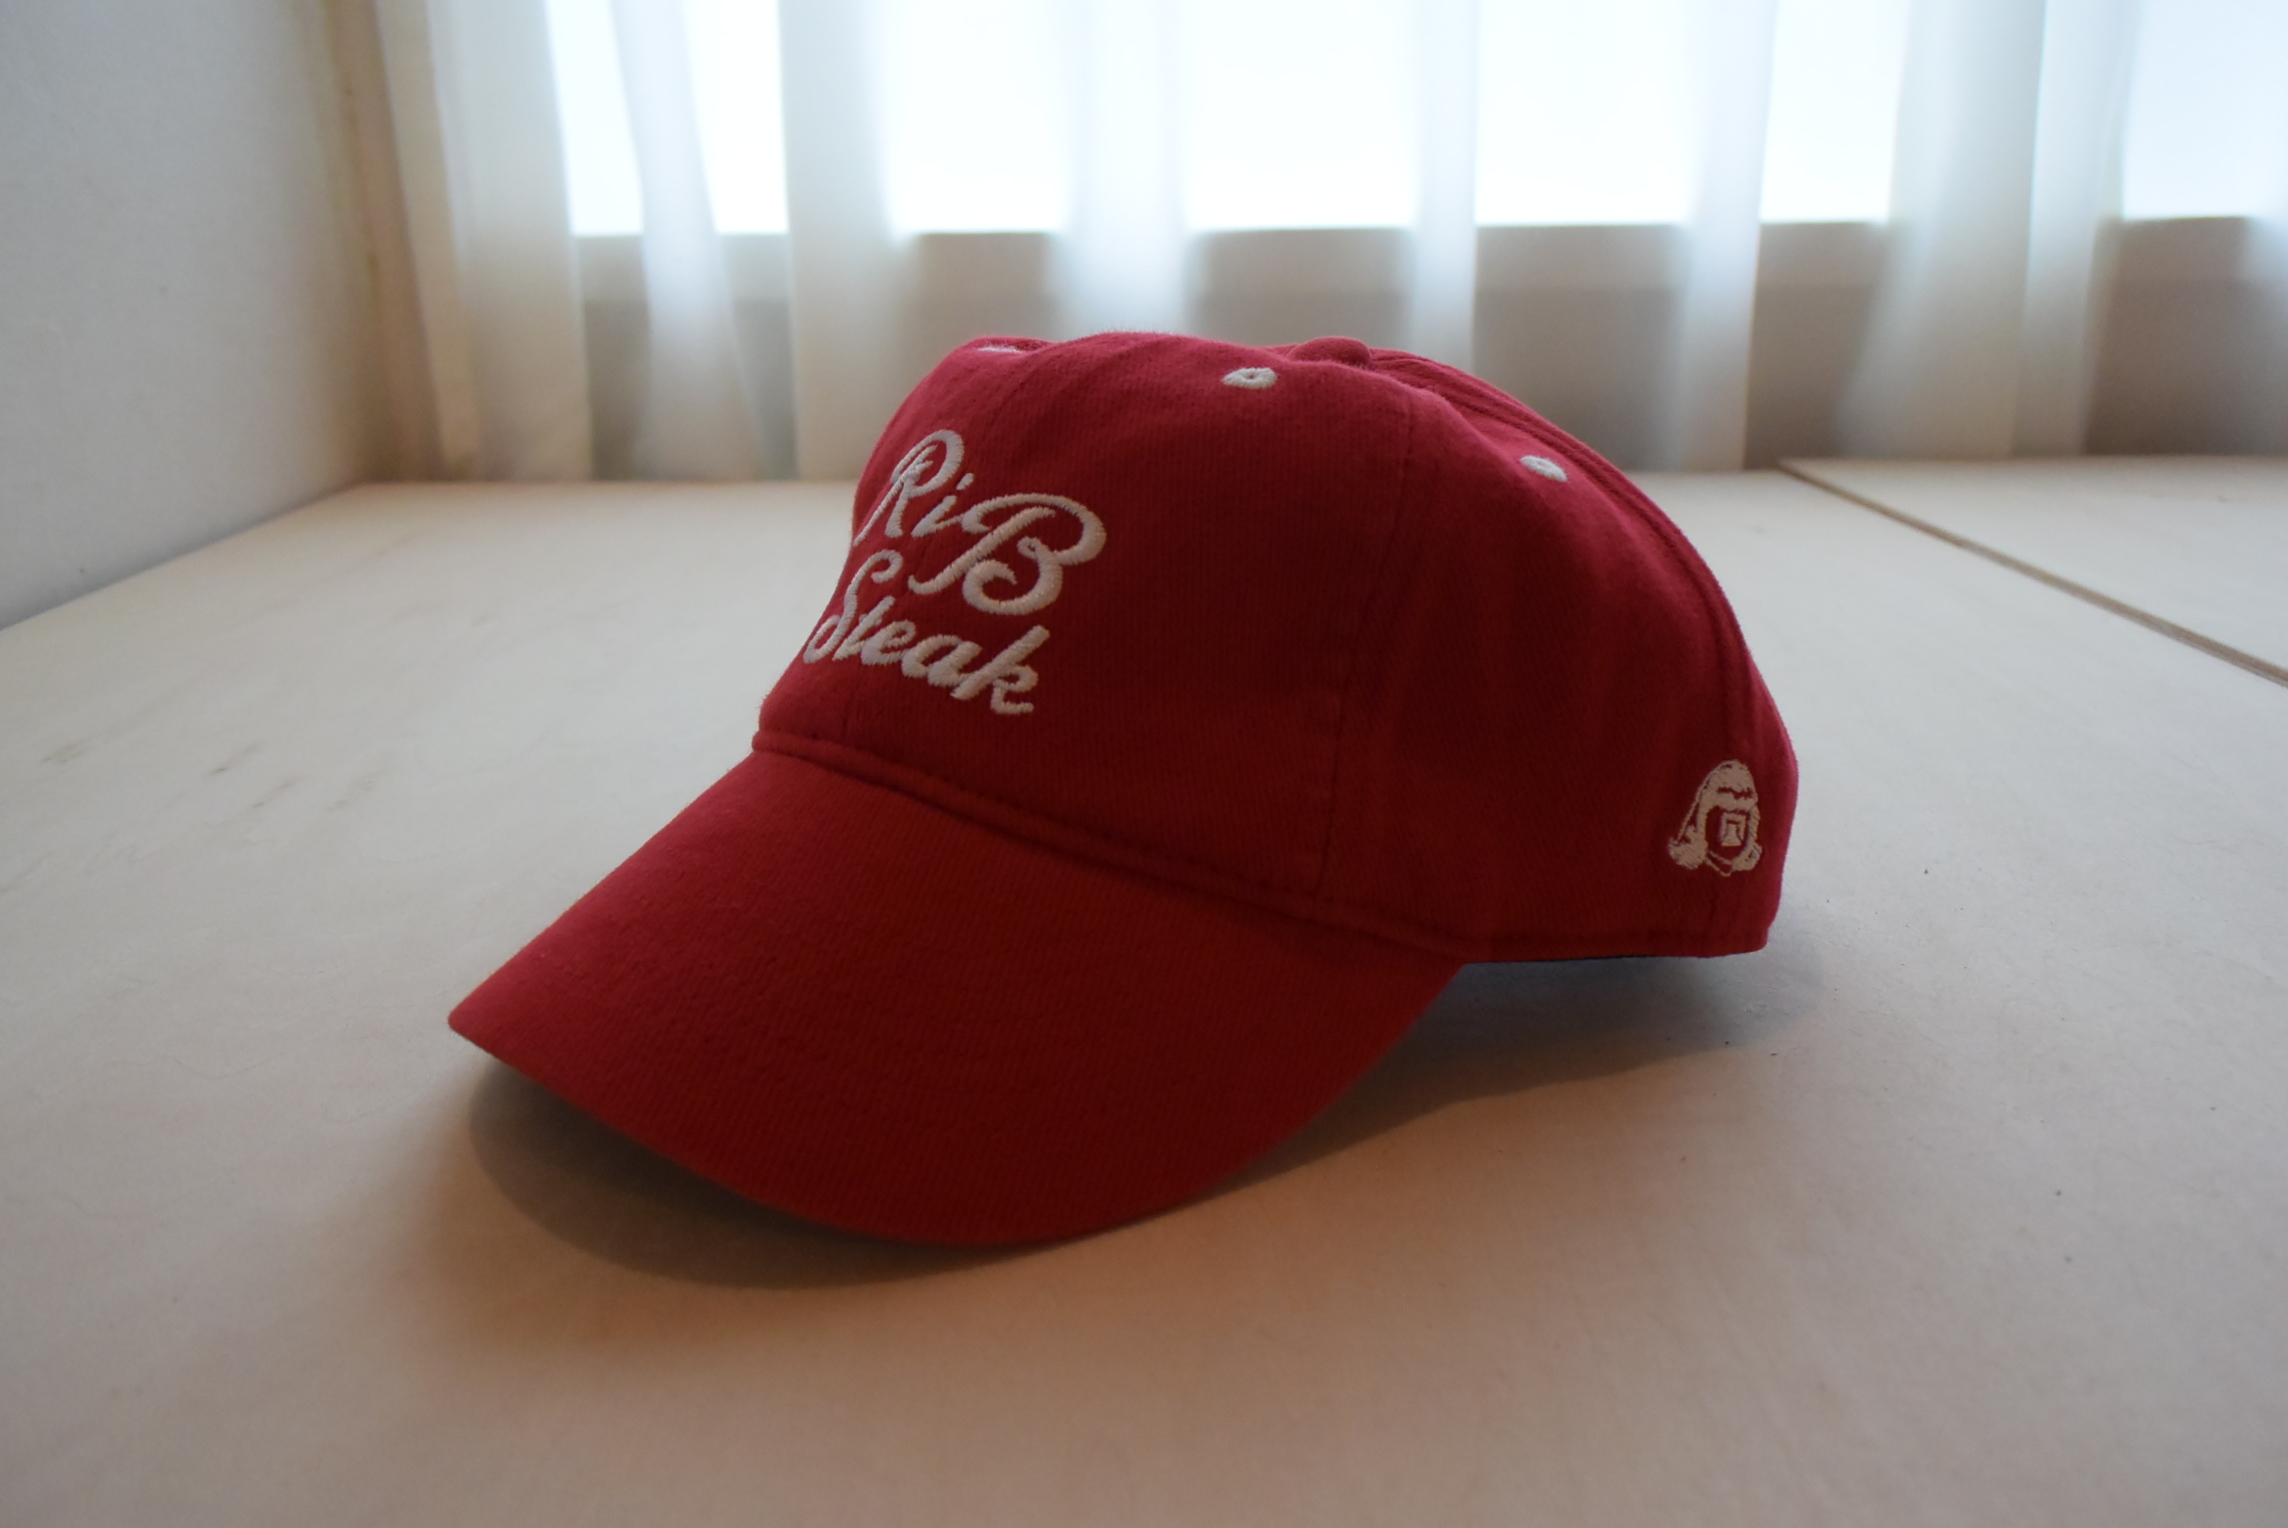 TACOMA FUJI RECORDS RIB STEAK CAP designed by Jerry UKAI